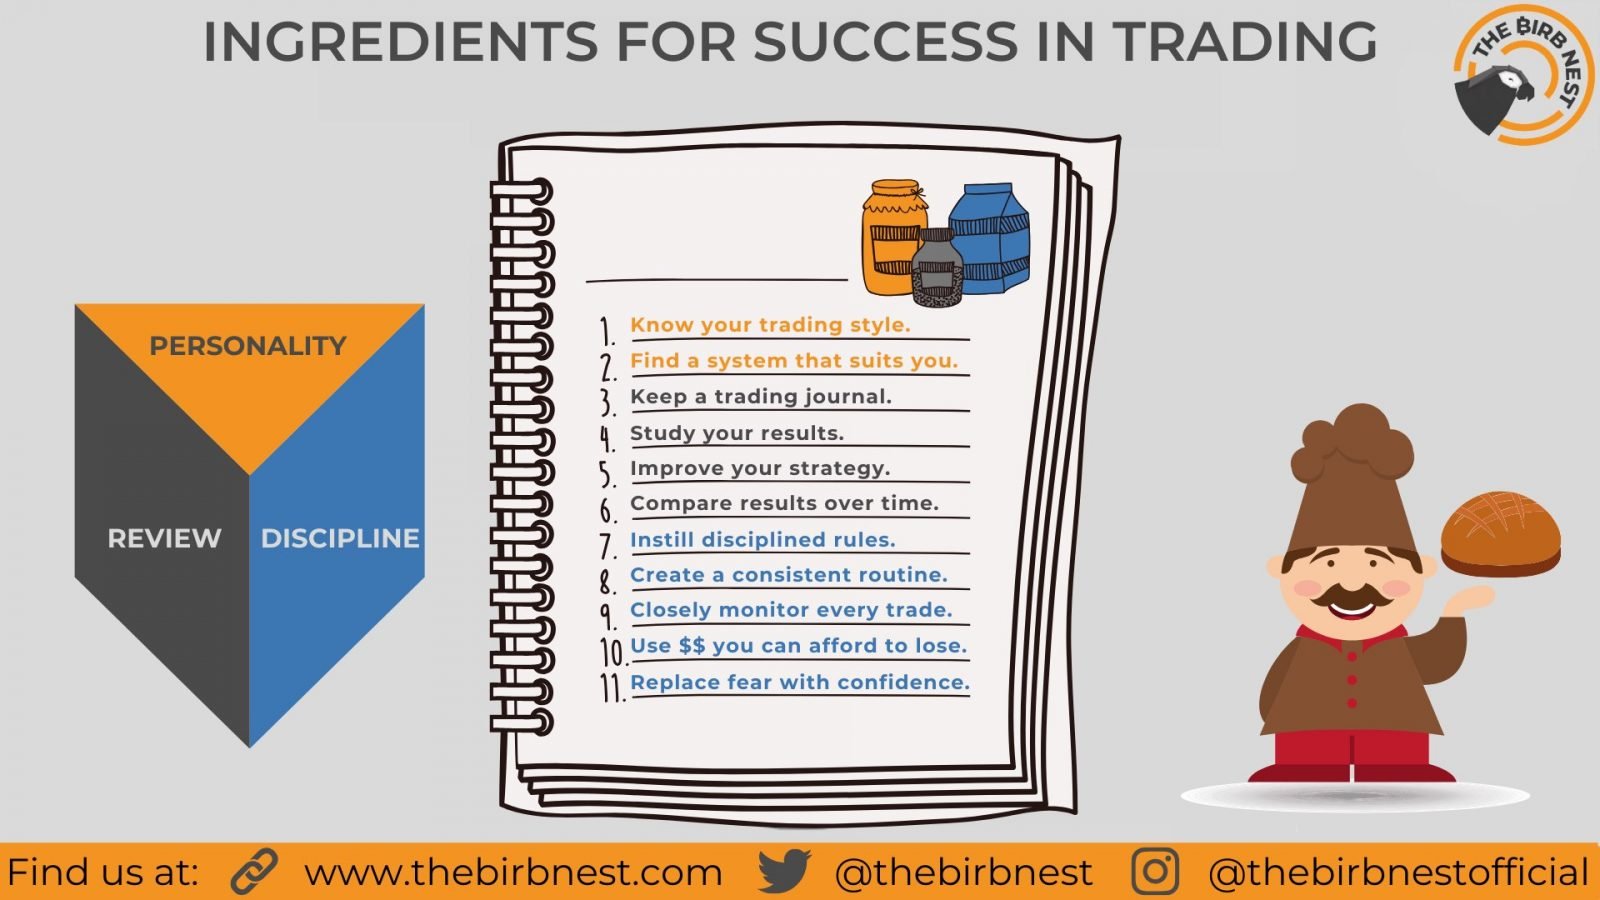 30 Ingrediennts for Success